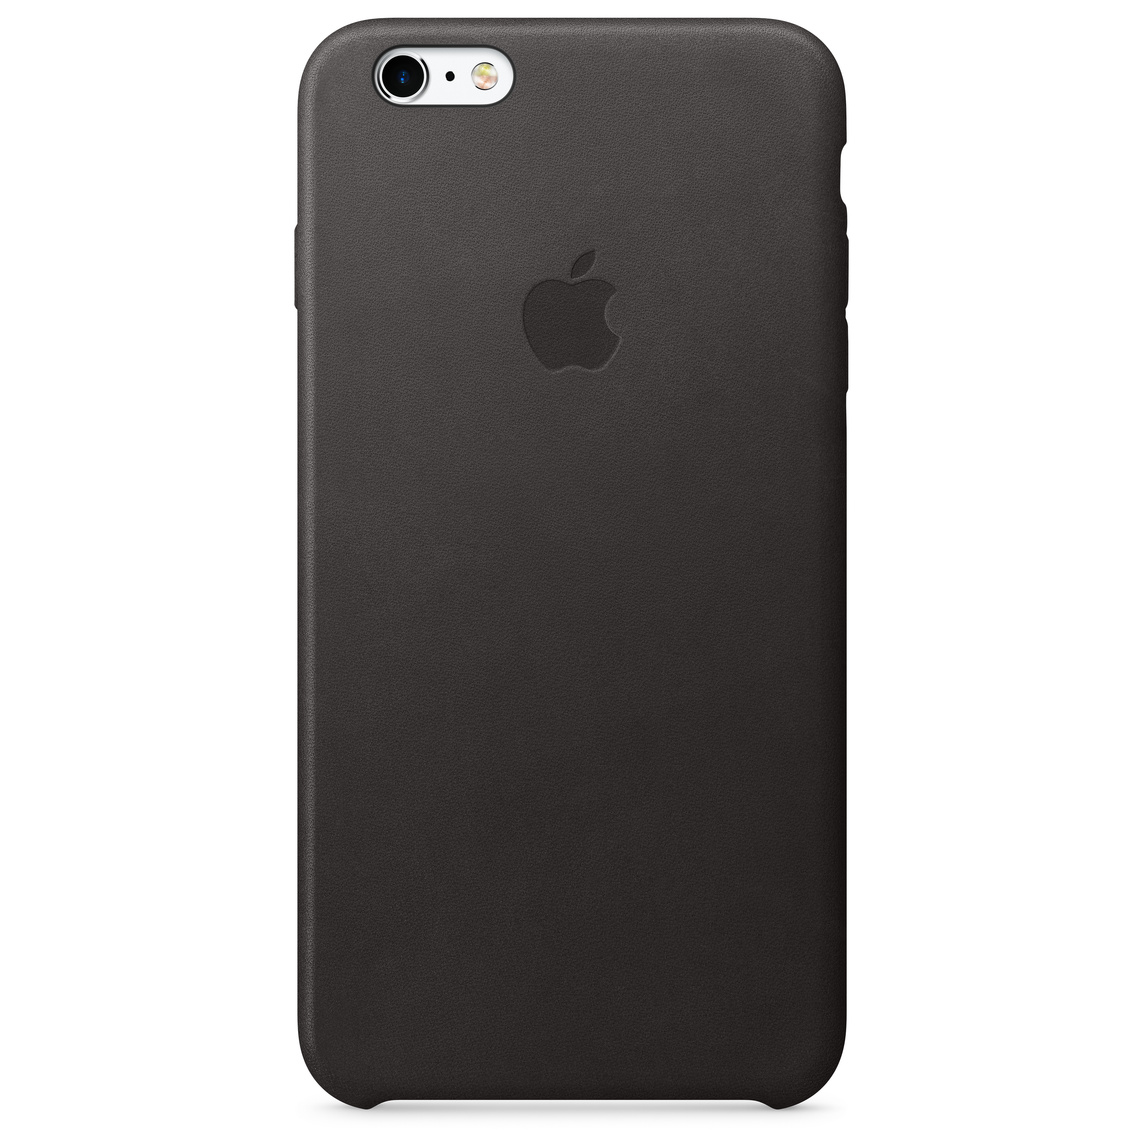 outlet store sale 90edc aa763 iPhone 6 Plus / 6s Plus Leather Case - Black